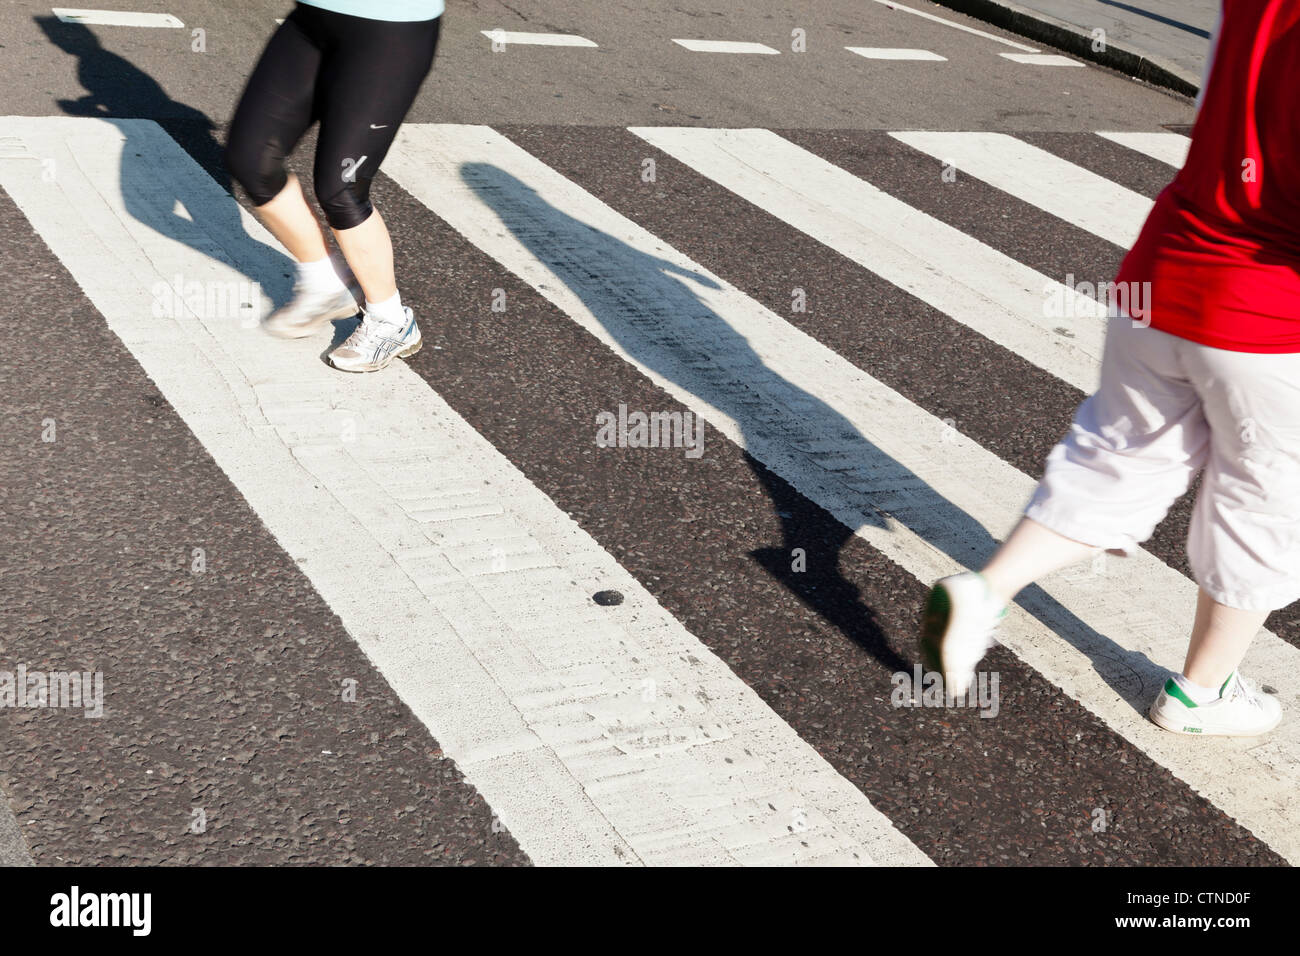 People running or jogging across a road using a zebra crossing, England, UK Stock Photo